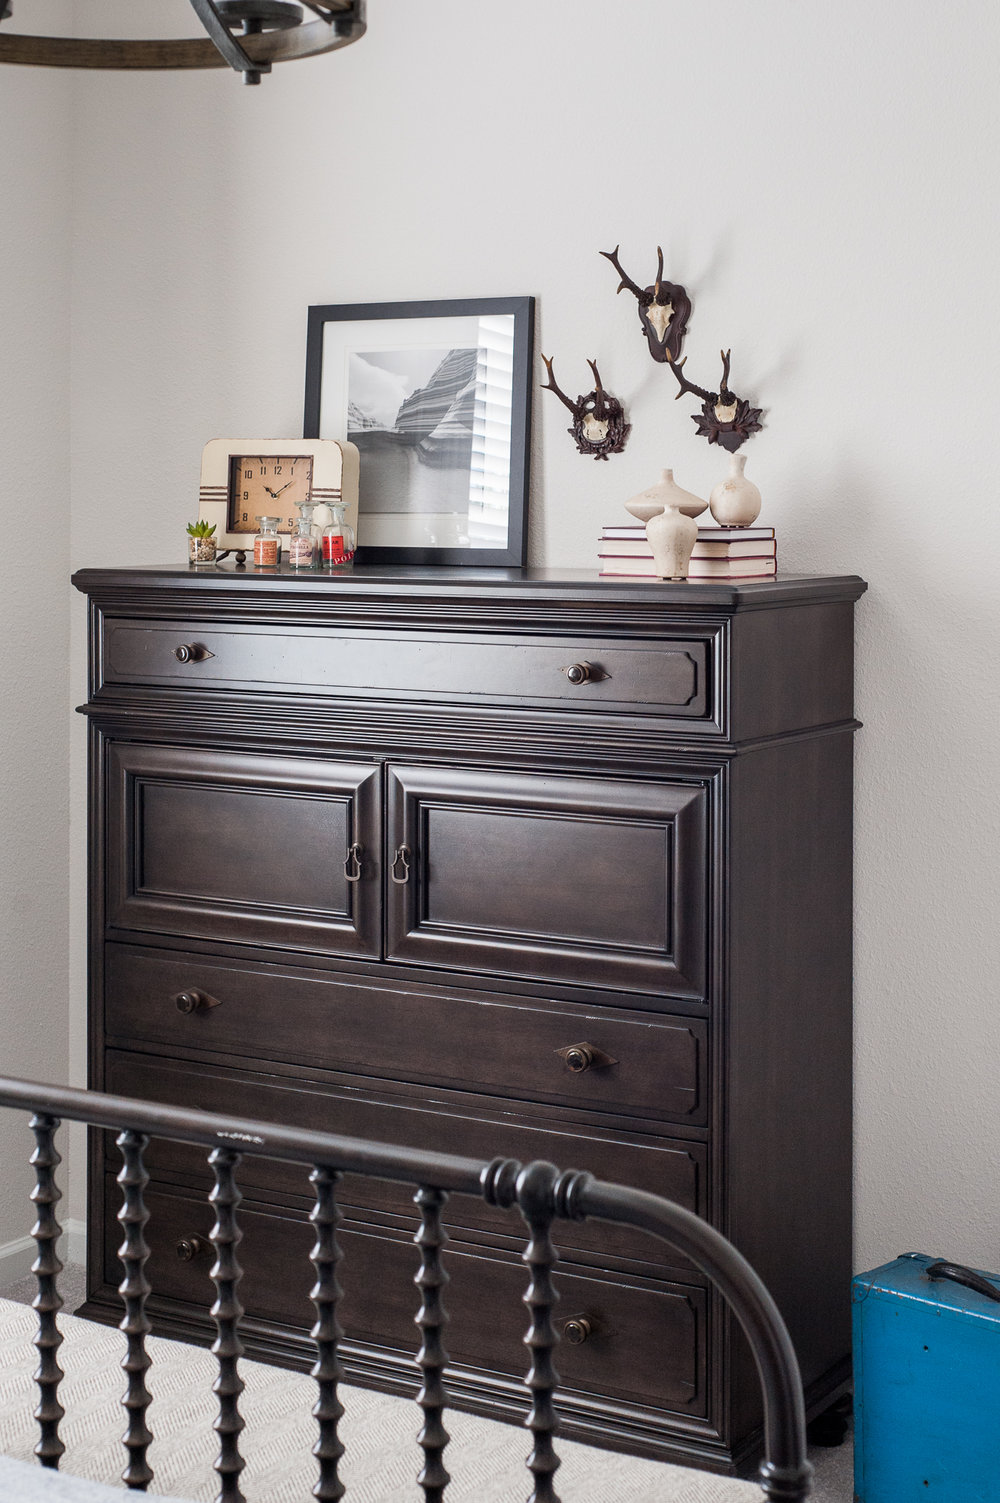 Micamy_Interior Designer_Design_Interior_Model_Merchandising_BoysBedroom_Boys_Camping_McGee&Co_PBTeen_Chest_Universal_Furniture_Styling_SpindleBed_Rustic.jpg